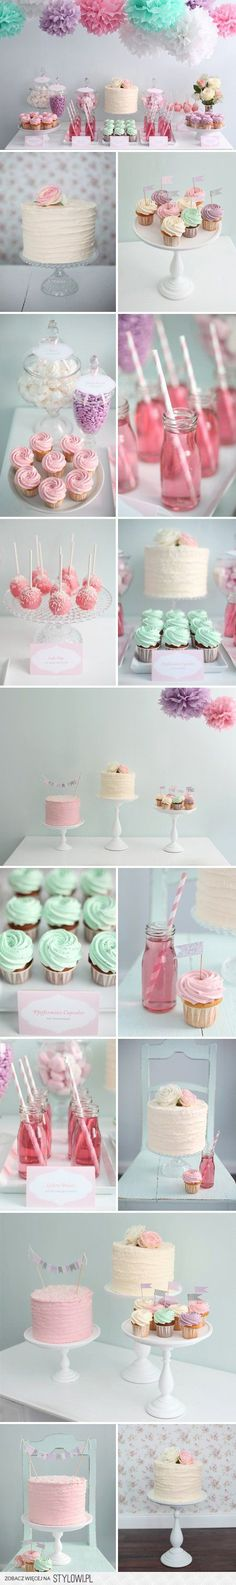 Creative Party Ideas